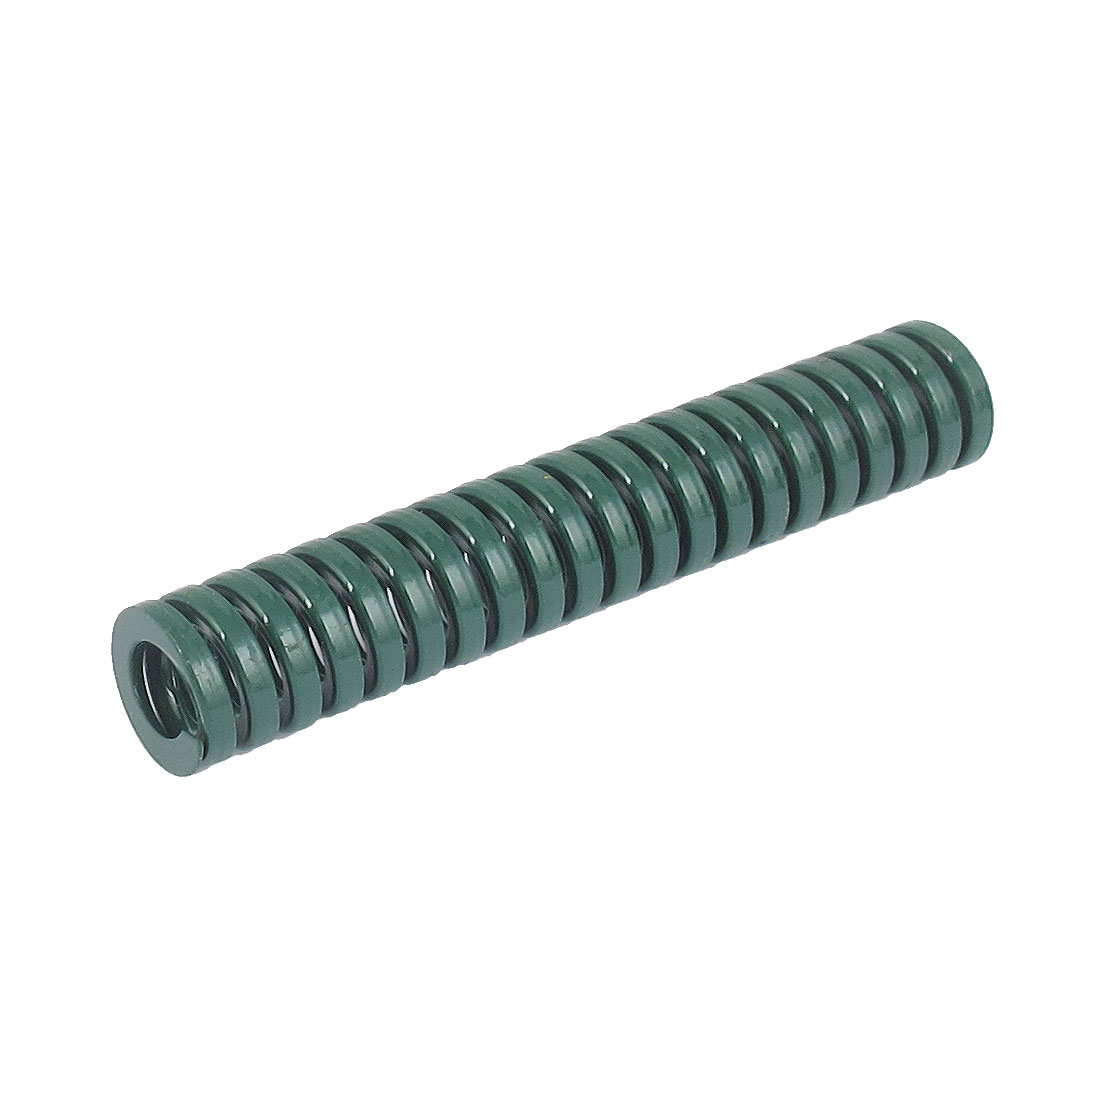 16mmx90mm Chromium Alloy Steel Heavy Load Die Spring Green